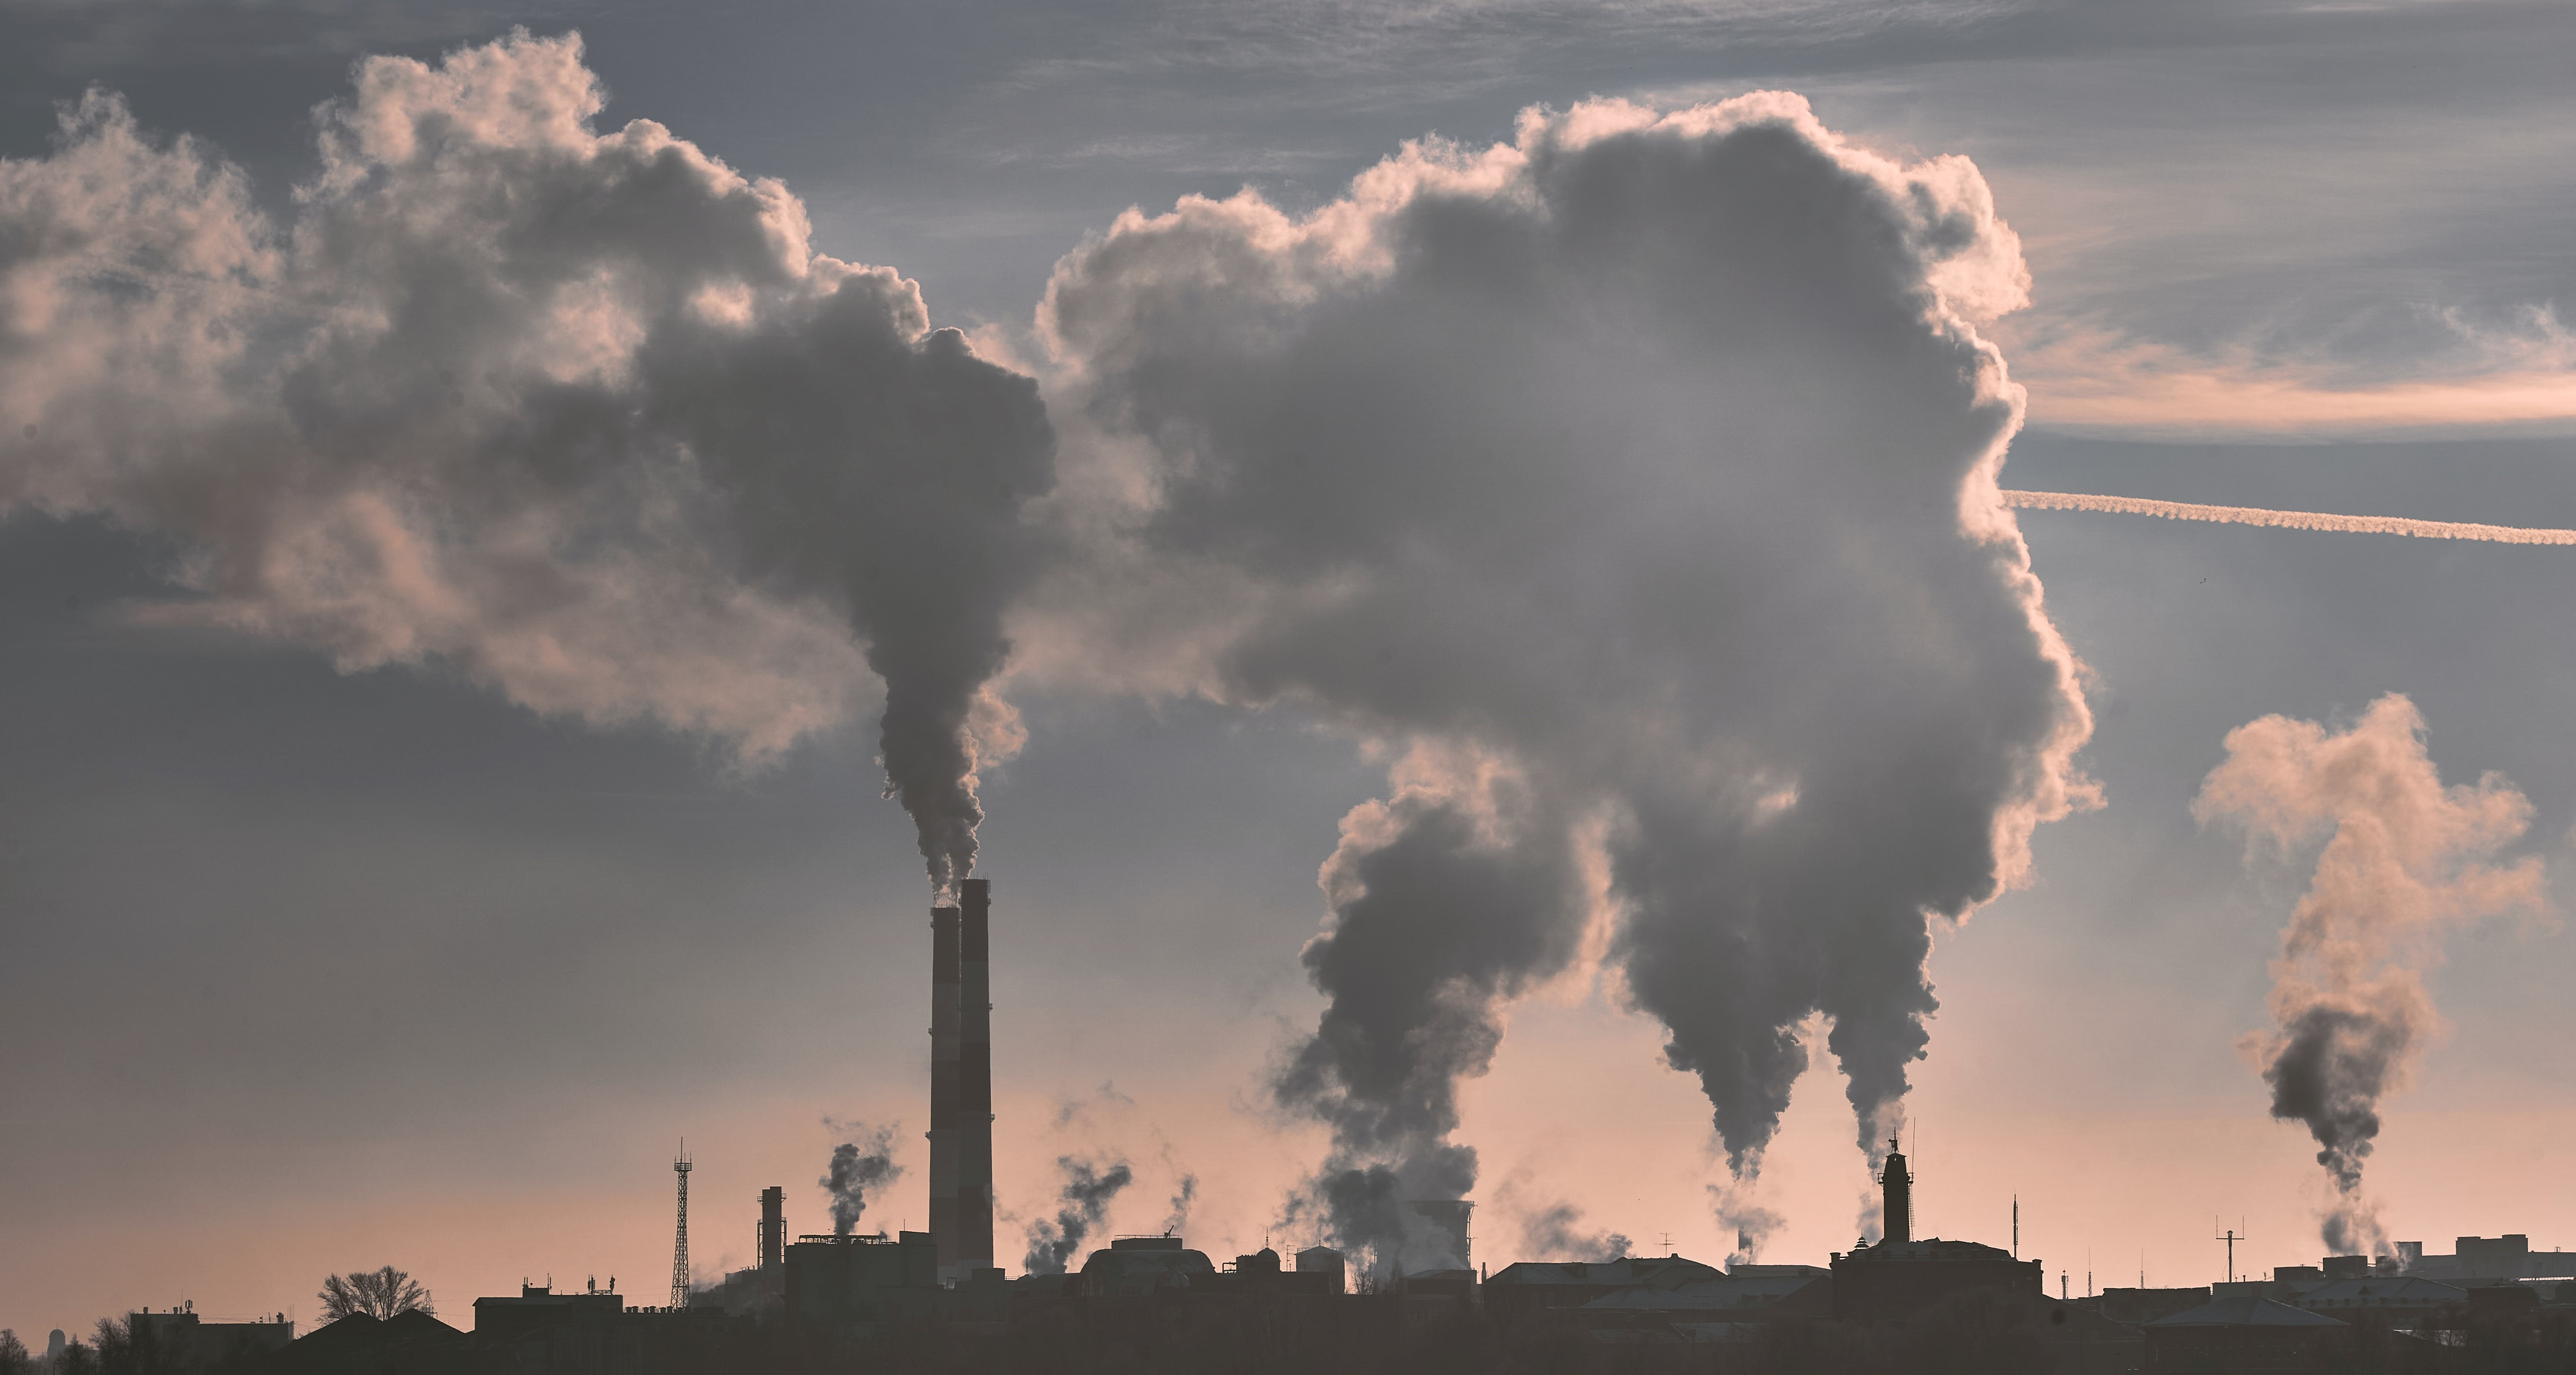 indoor air pollution can be worse than outdoor air pollution